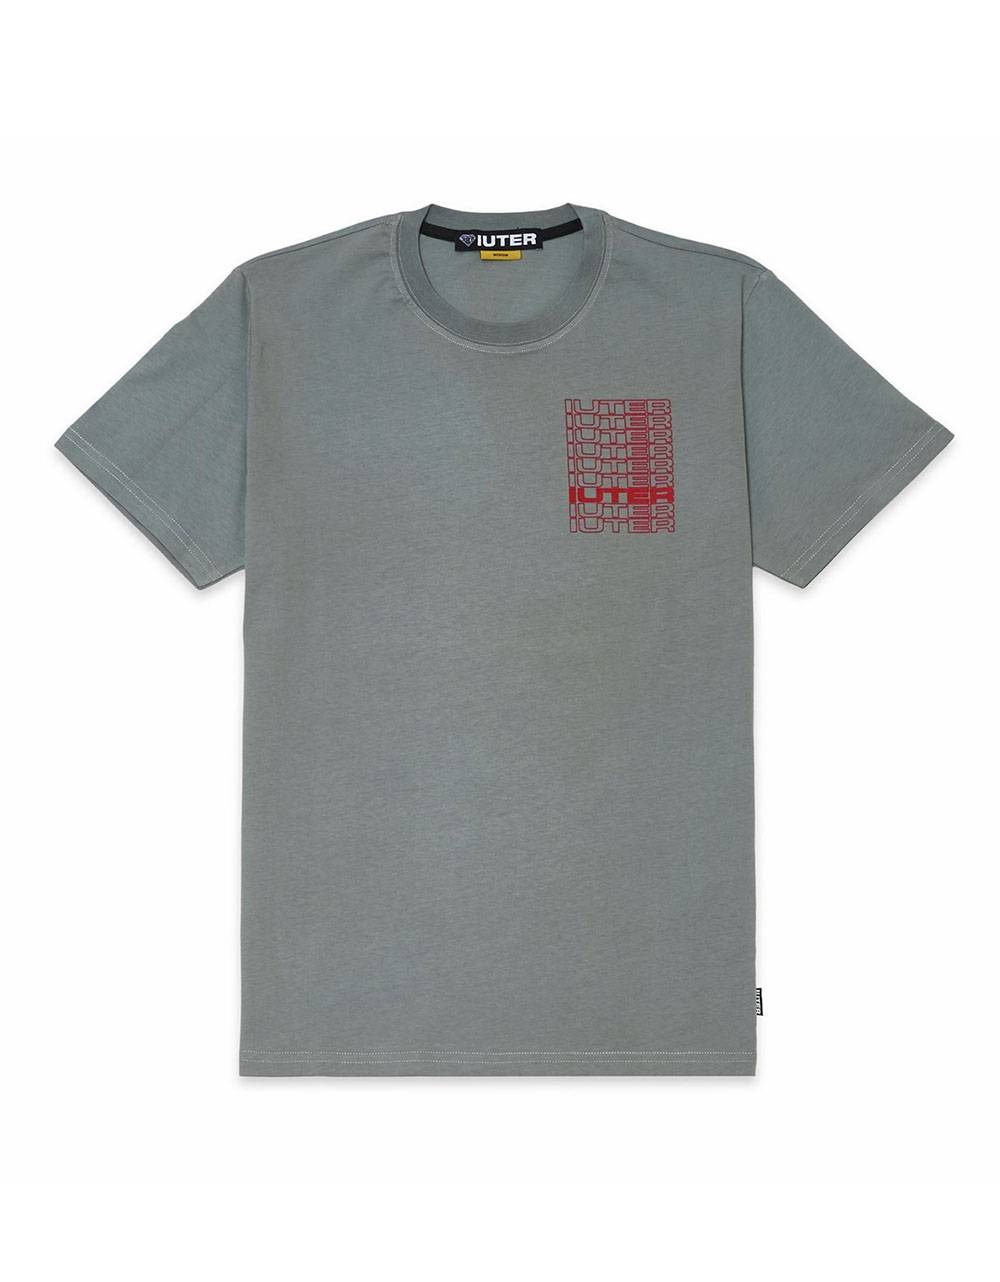 Iuter spine tee - grey IUTER T-shirt 42,00 €